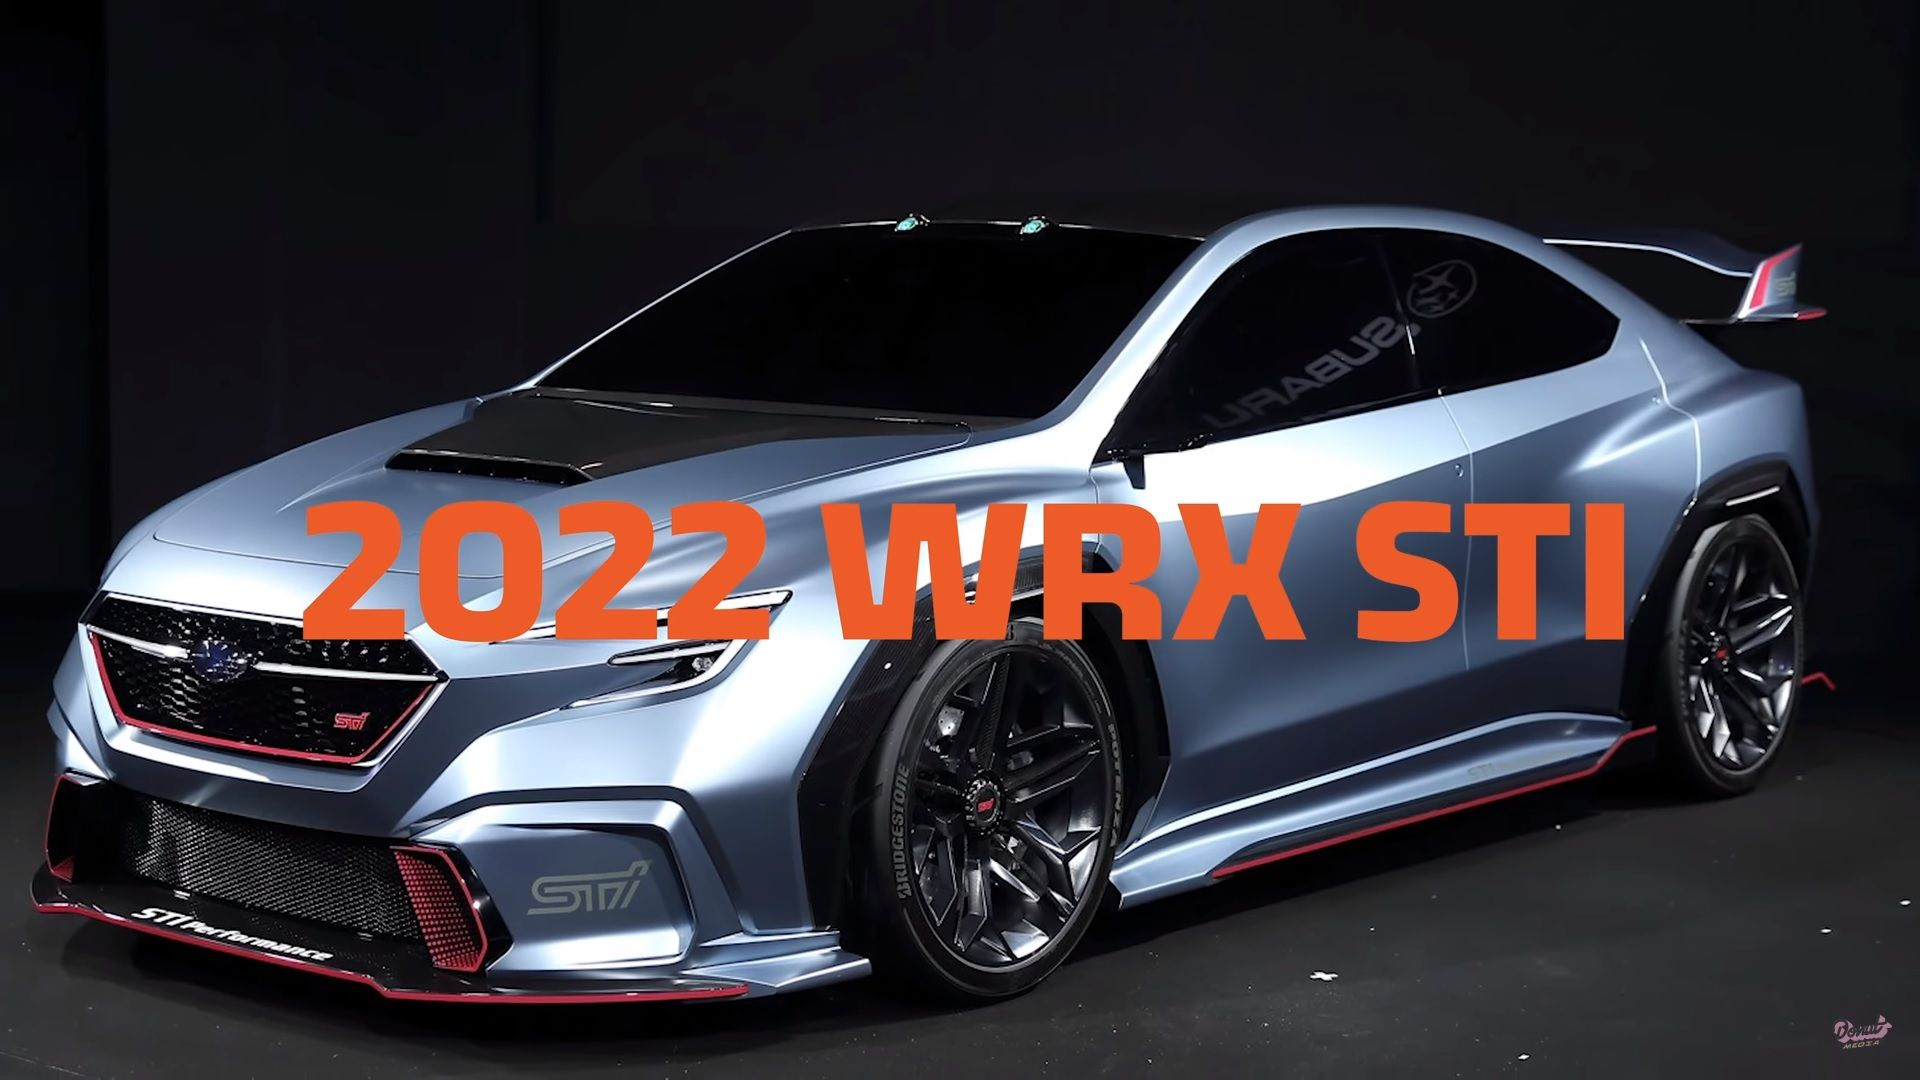 Here S The Science Behind The 2 4 Liter Boxer Engine That Will Power The 2022 Subaru Wrx Sti Top Speed In 2020 Subaru Wrx Sti Subaru Wrx Wrx Sti